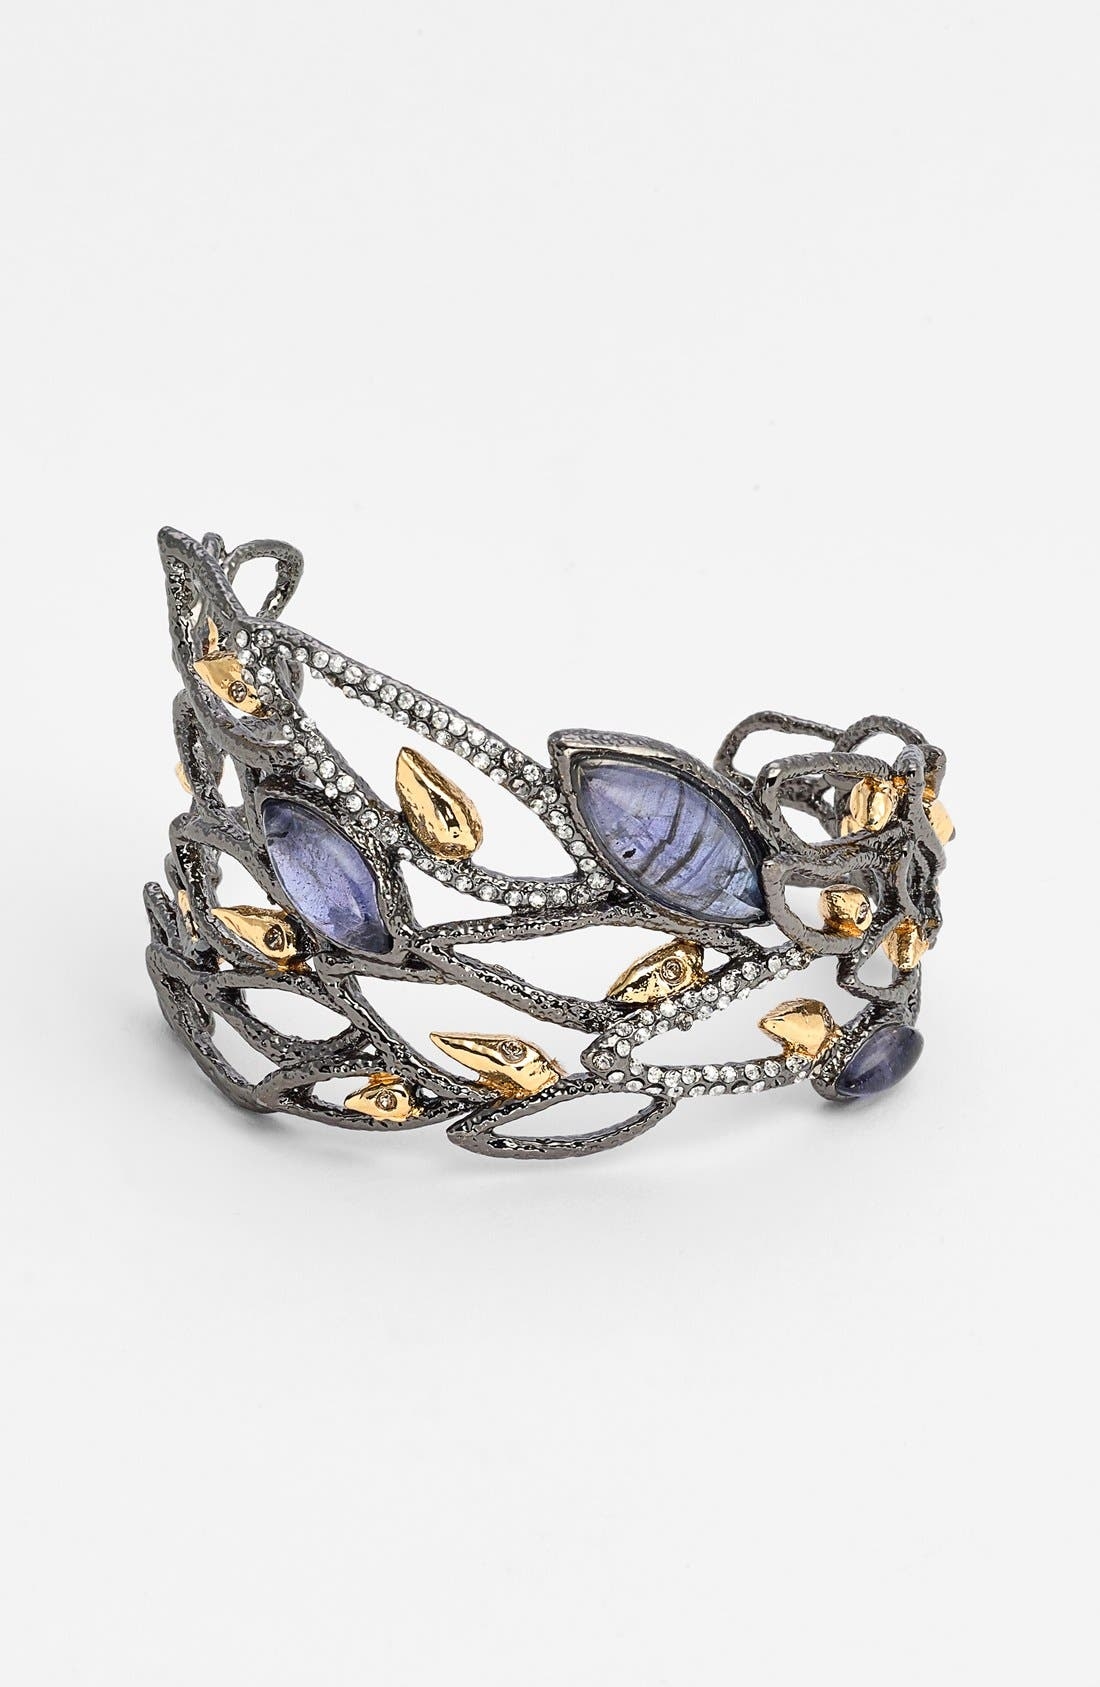 Alternate Image 1 Selected - Alexis Bittar 'Elements' Asymmetrical Cuff